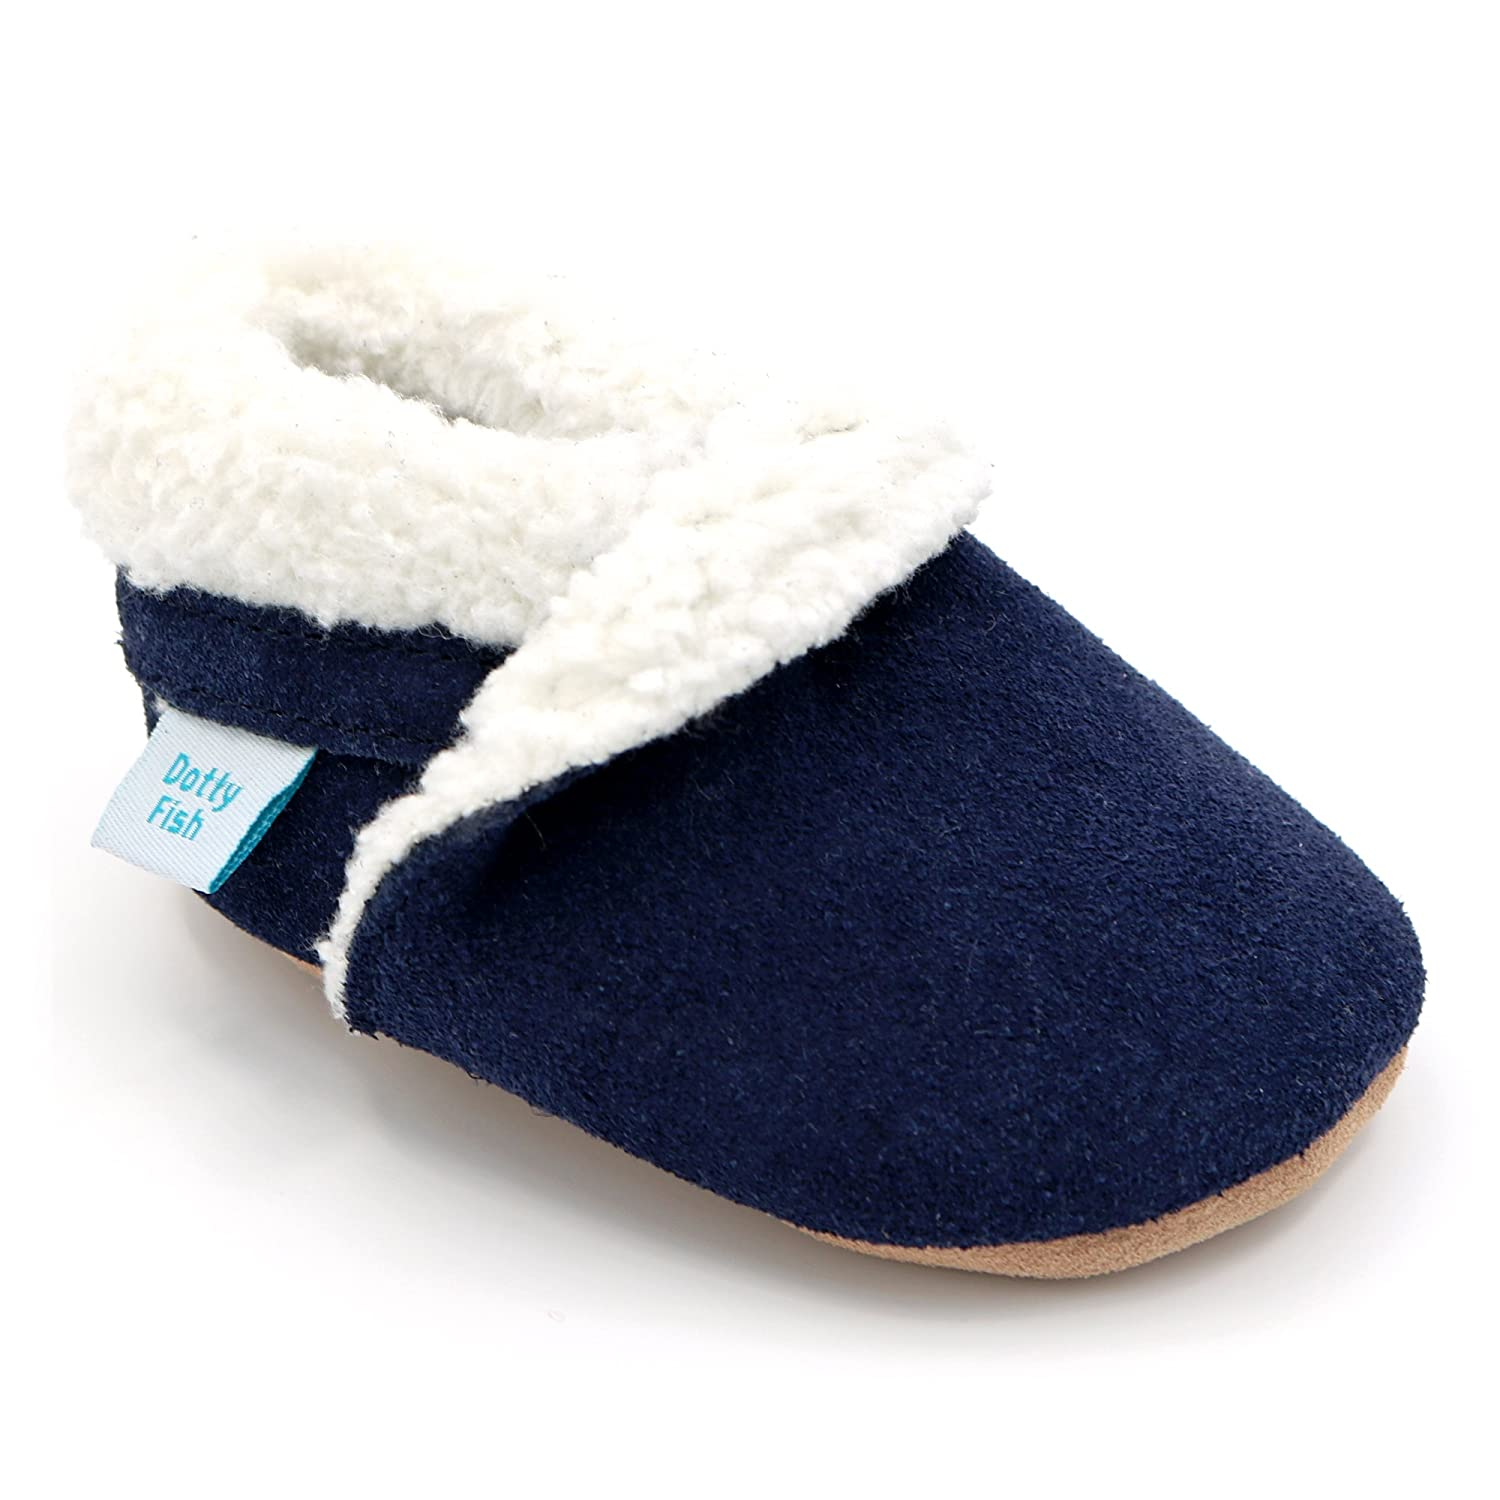 Dotty Fish Soft Leather Baby Suede Slippers with Fleece Lining US 11. US 3